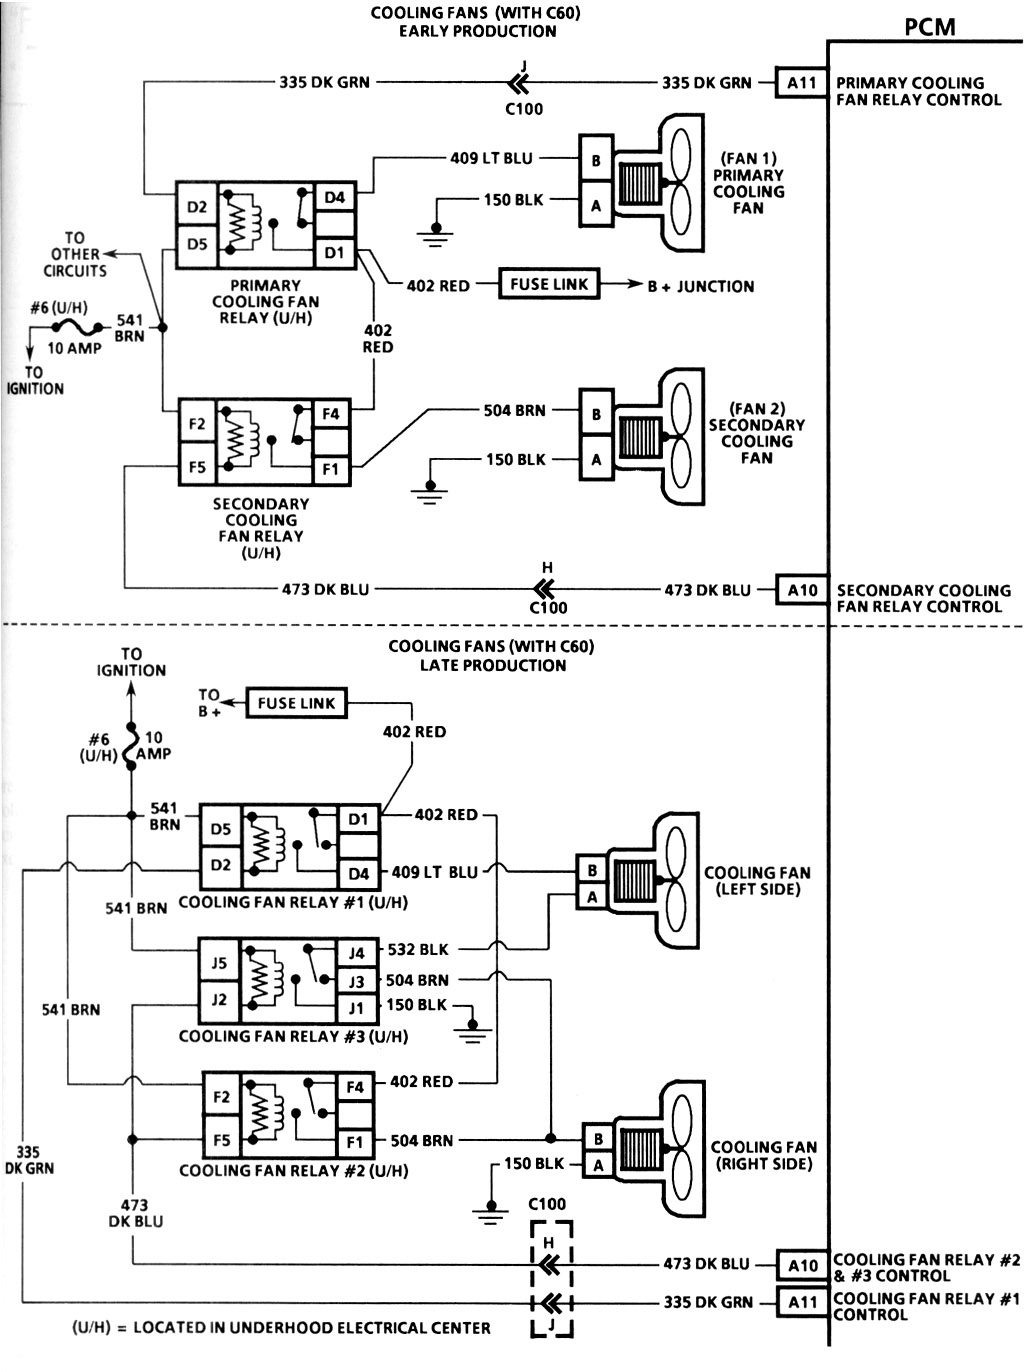 lt1 wiring harness diagram house earthing 96 corvette engine get free image about